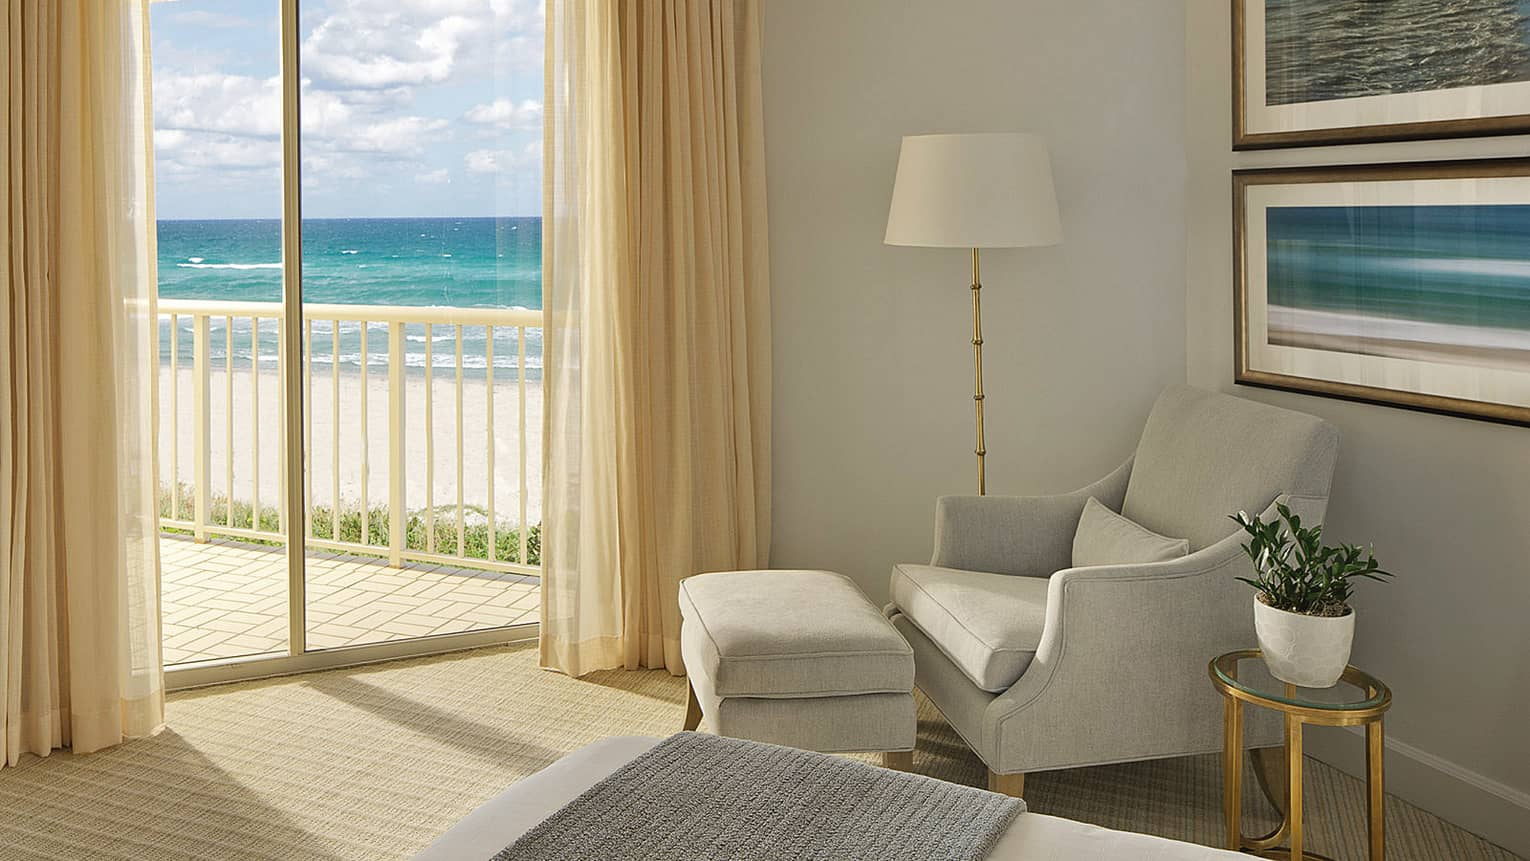 White armchair next to glass balcony door with view of ocean and beach